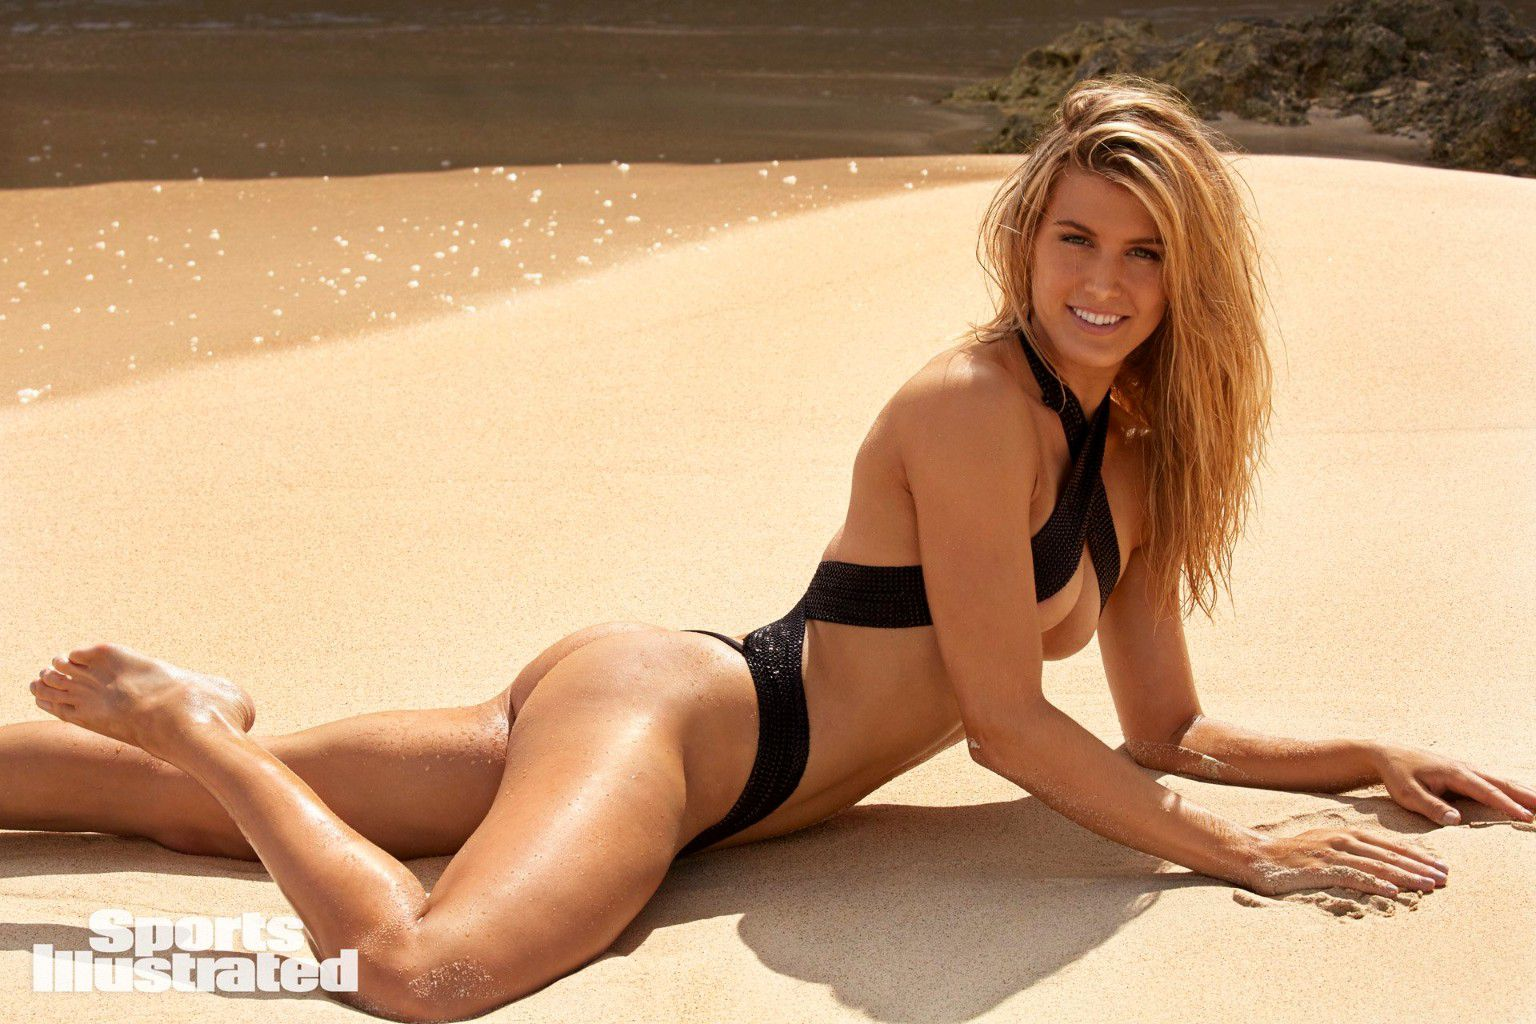 eugenie-bouchard-super-sexy-in-sports-illustrated-swimsuit-issue-2018-17